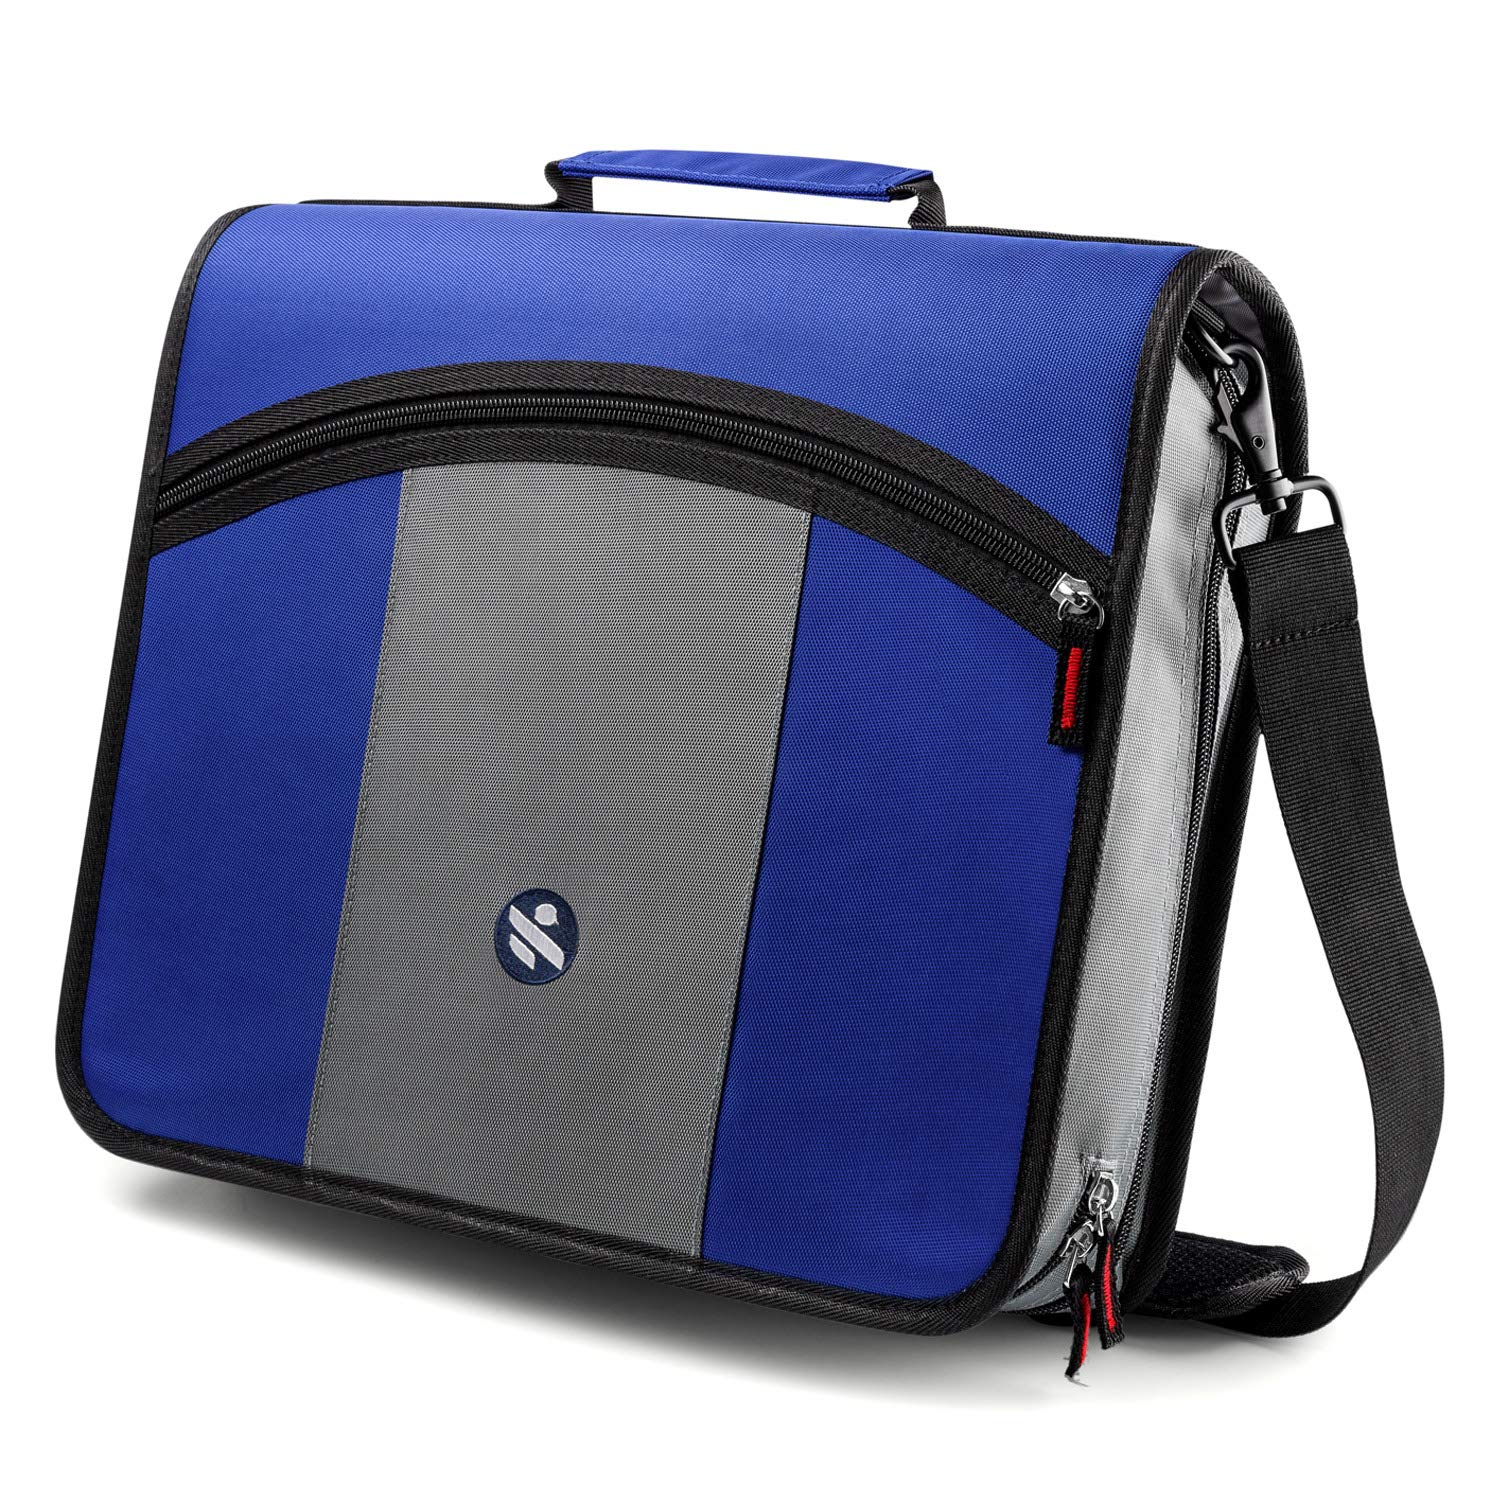 Kinbashi 3-Inch Zipper Binder, Round Ring Binder with Expanding Files, Handle and Shoulder Strap, Blue, Upgraded by Kinbashi